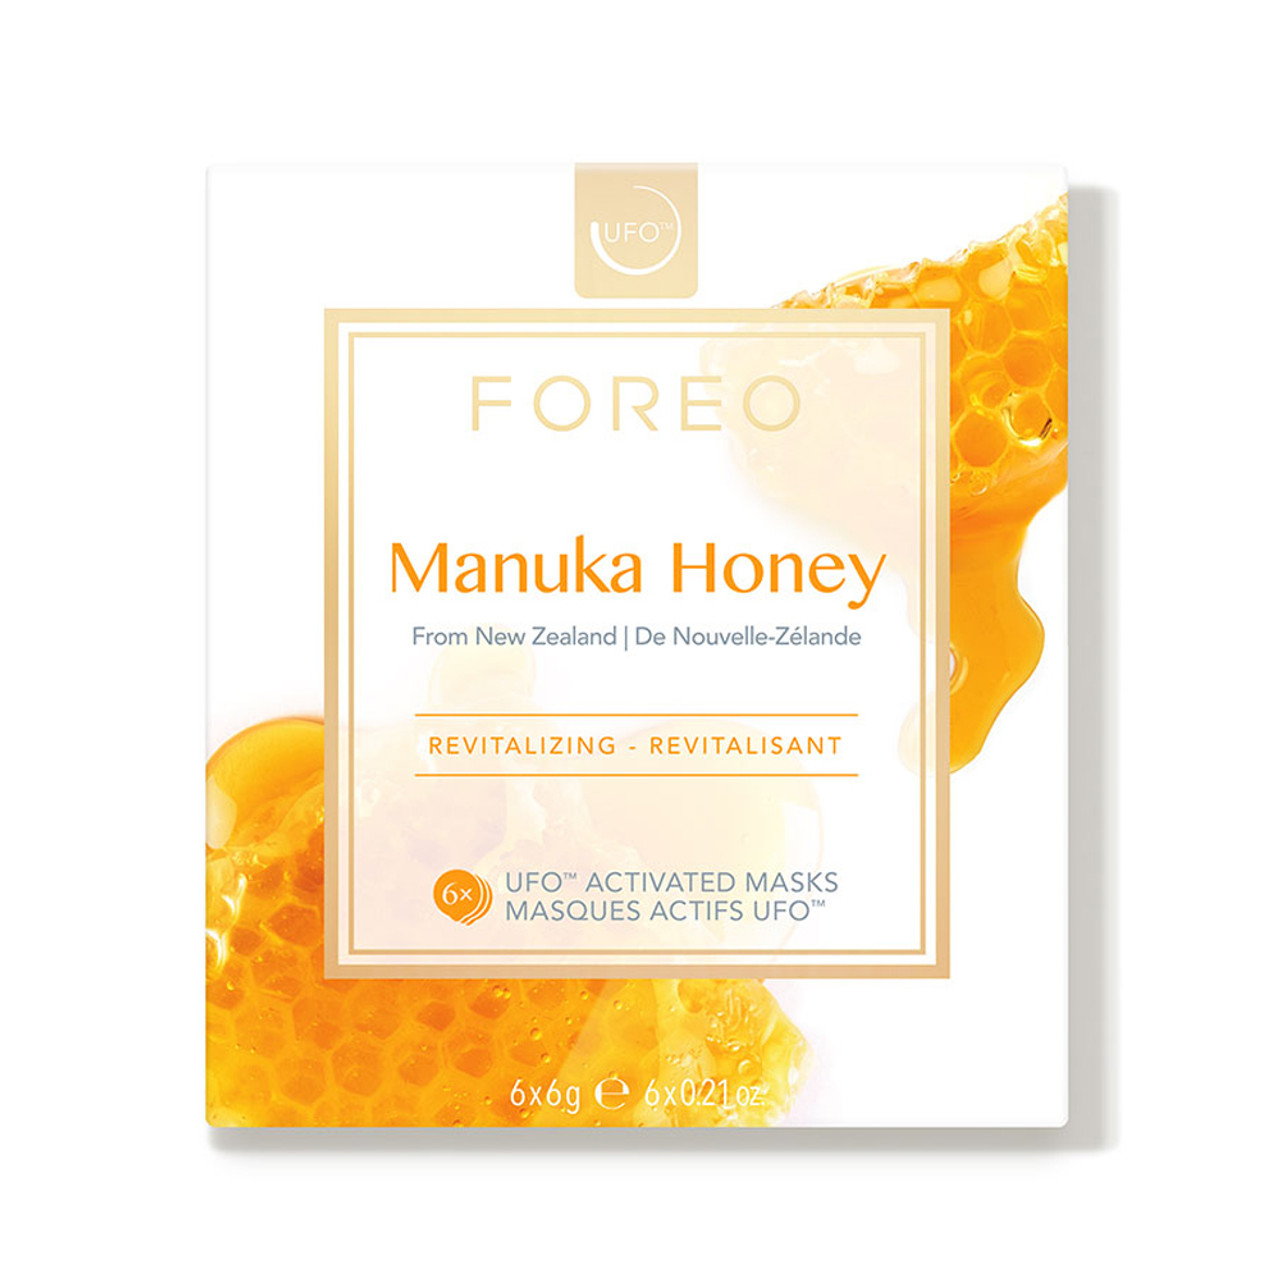 Foreo UFO Activated Masks - Manuka Honey (6-Pk)